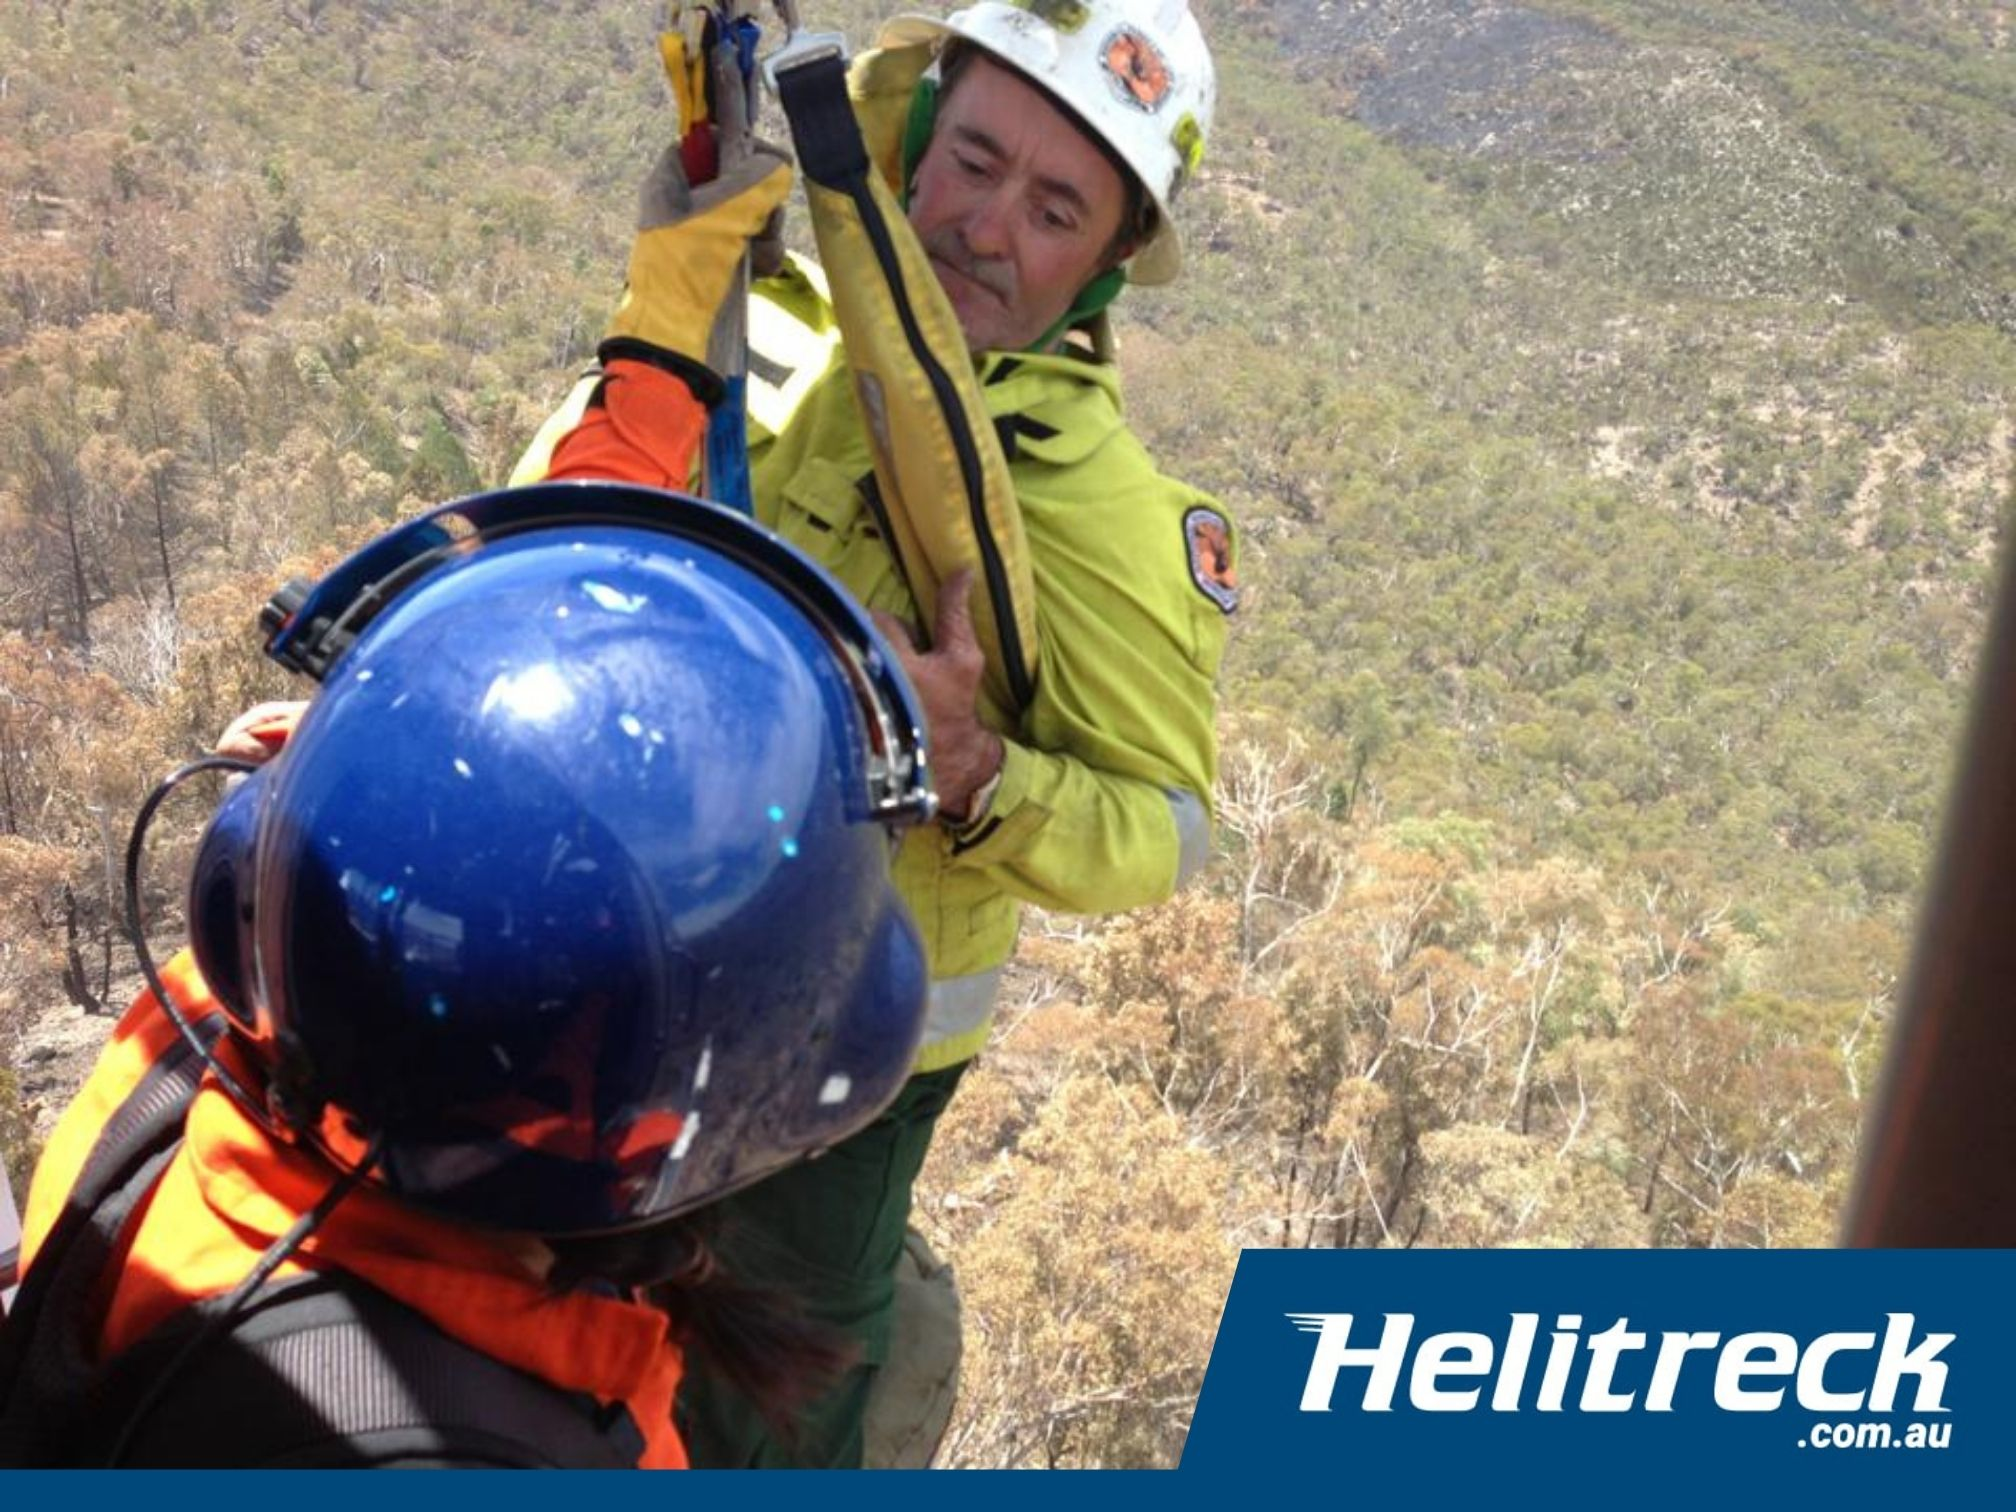 Helicopter Winching Helitreck7